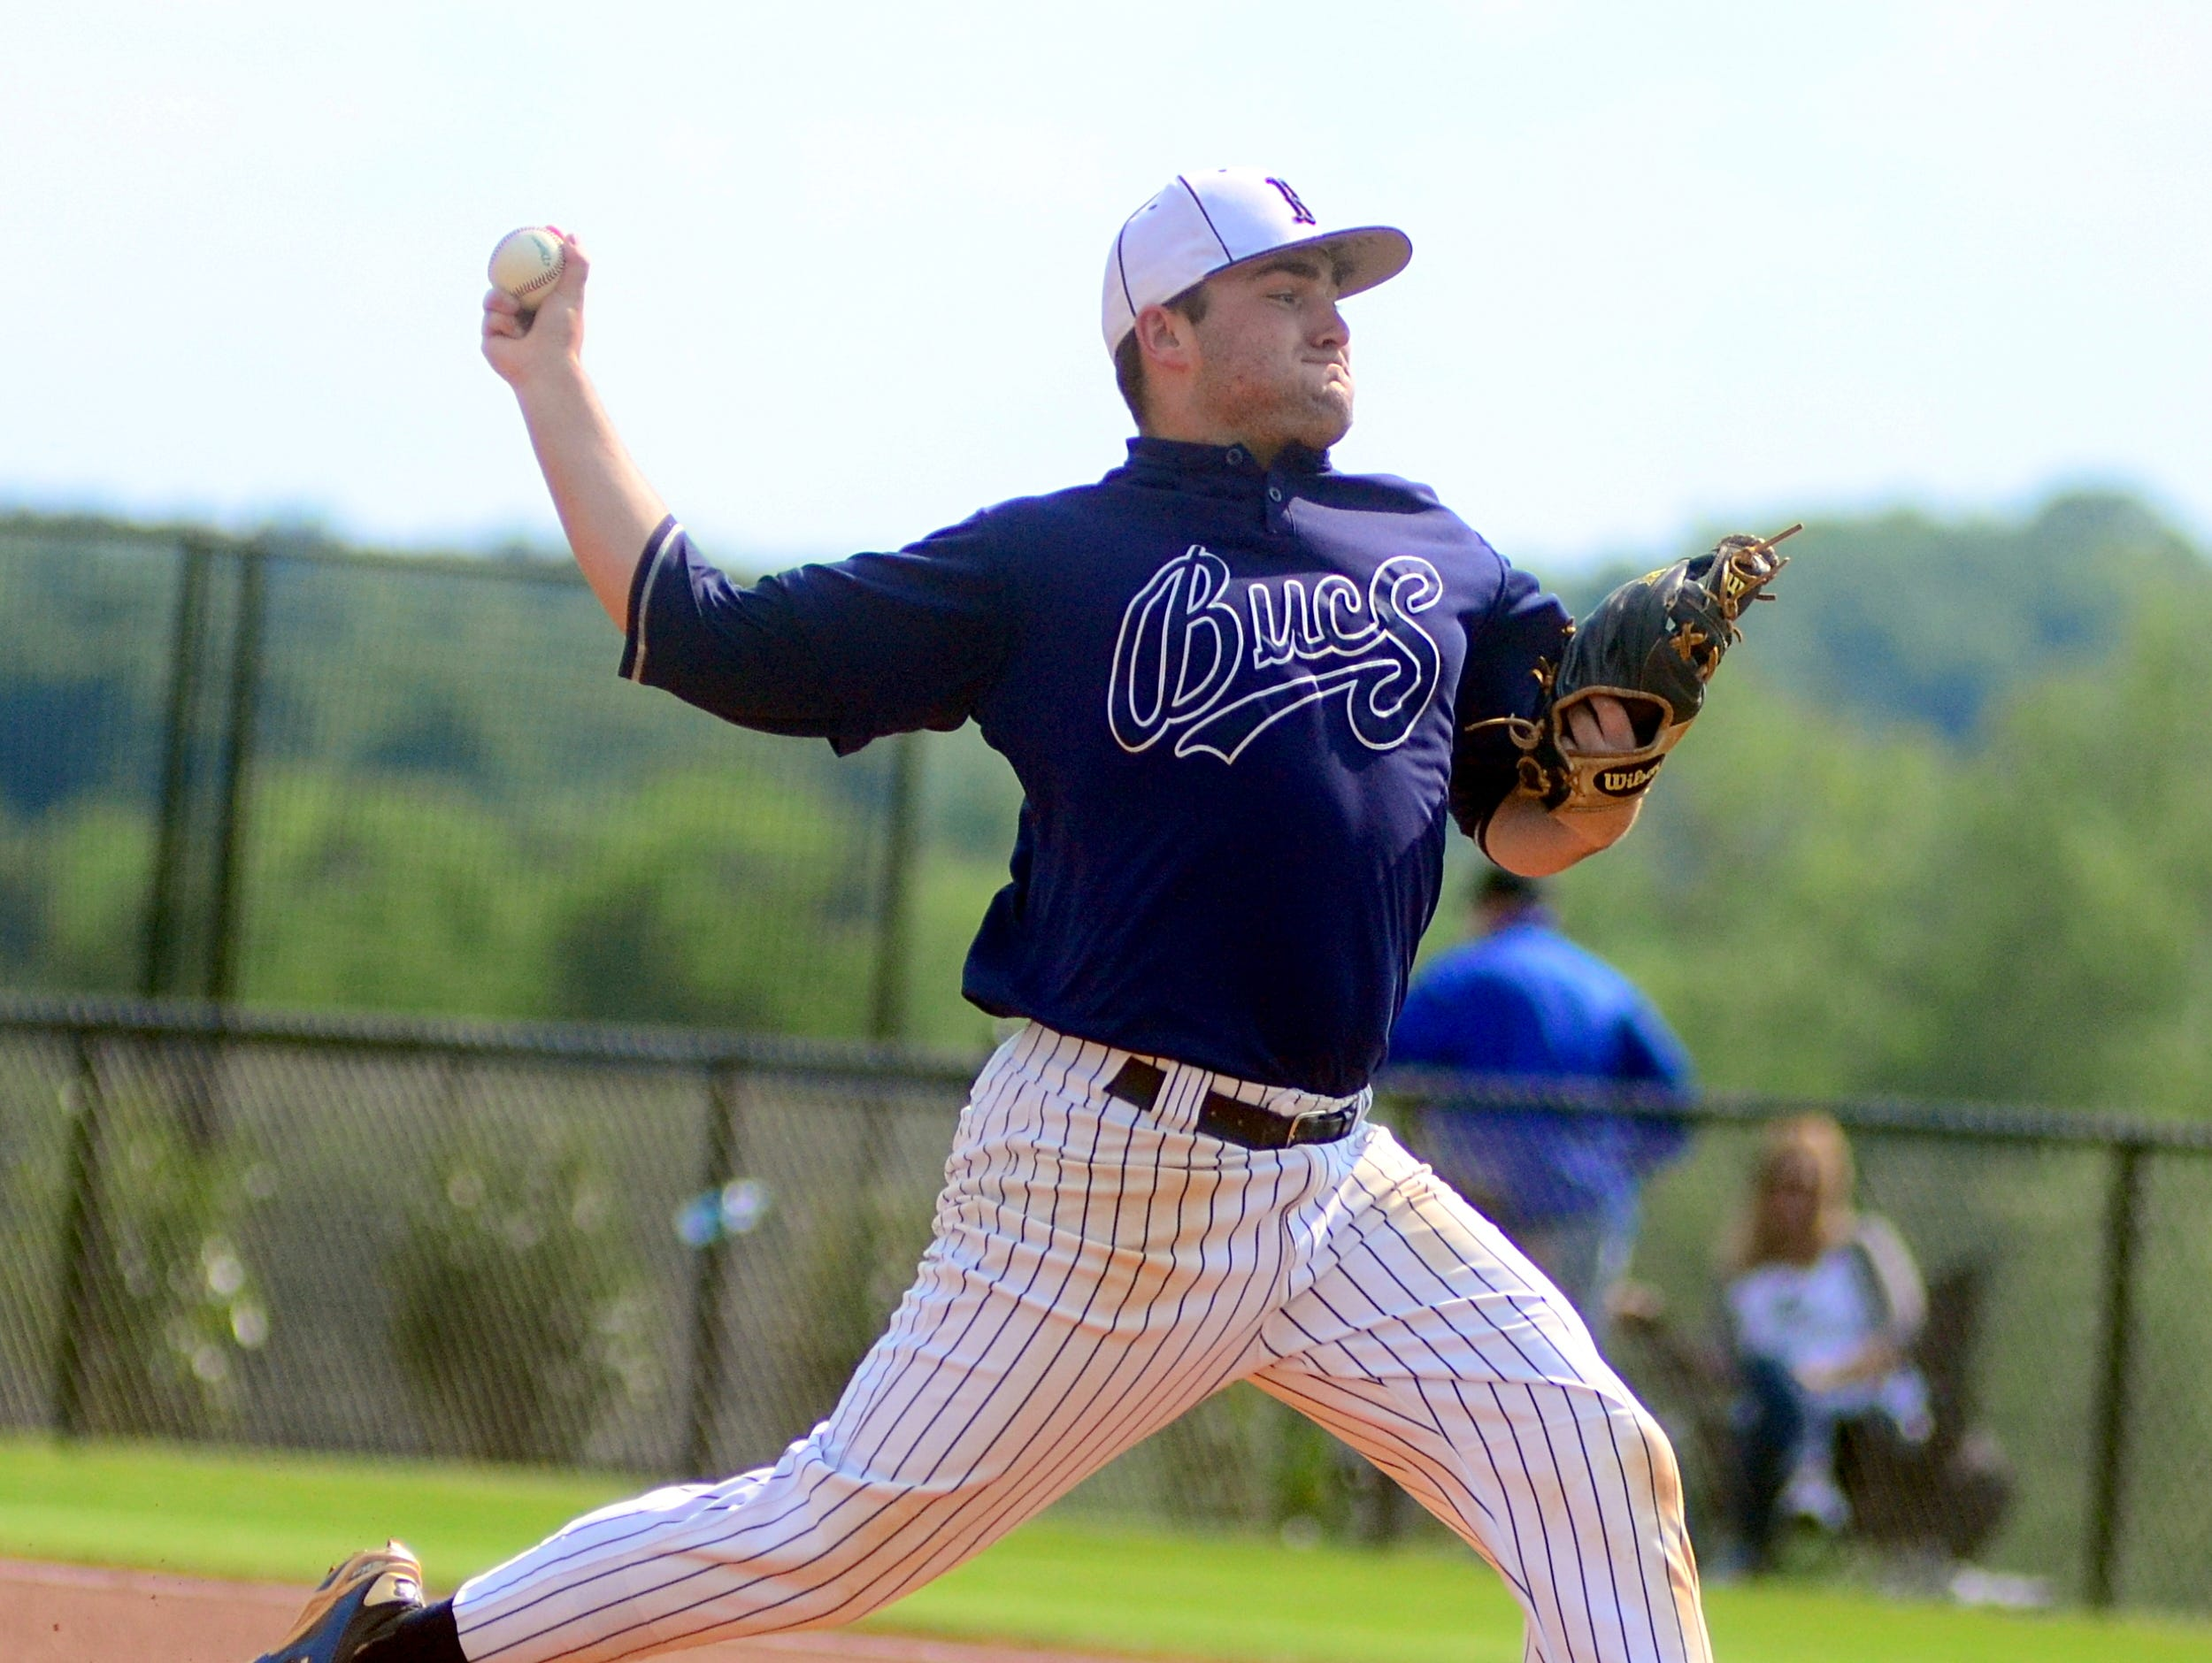 Beech High senior starting pitcher Dalton Hall struck out seven hitters in a complete-game, four-hit shutout in Friday afternoon's 4-0 victory over Lebanon.